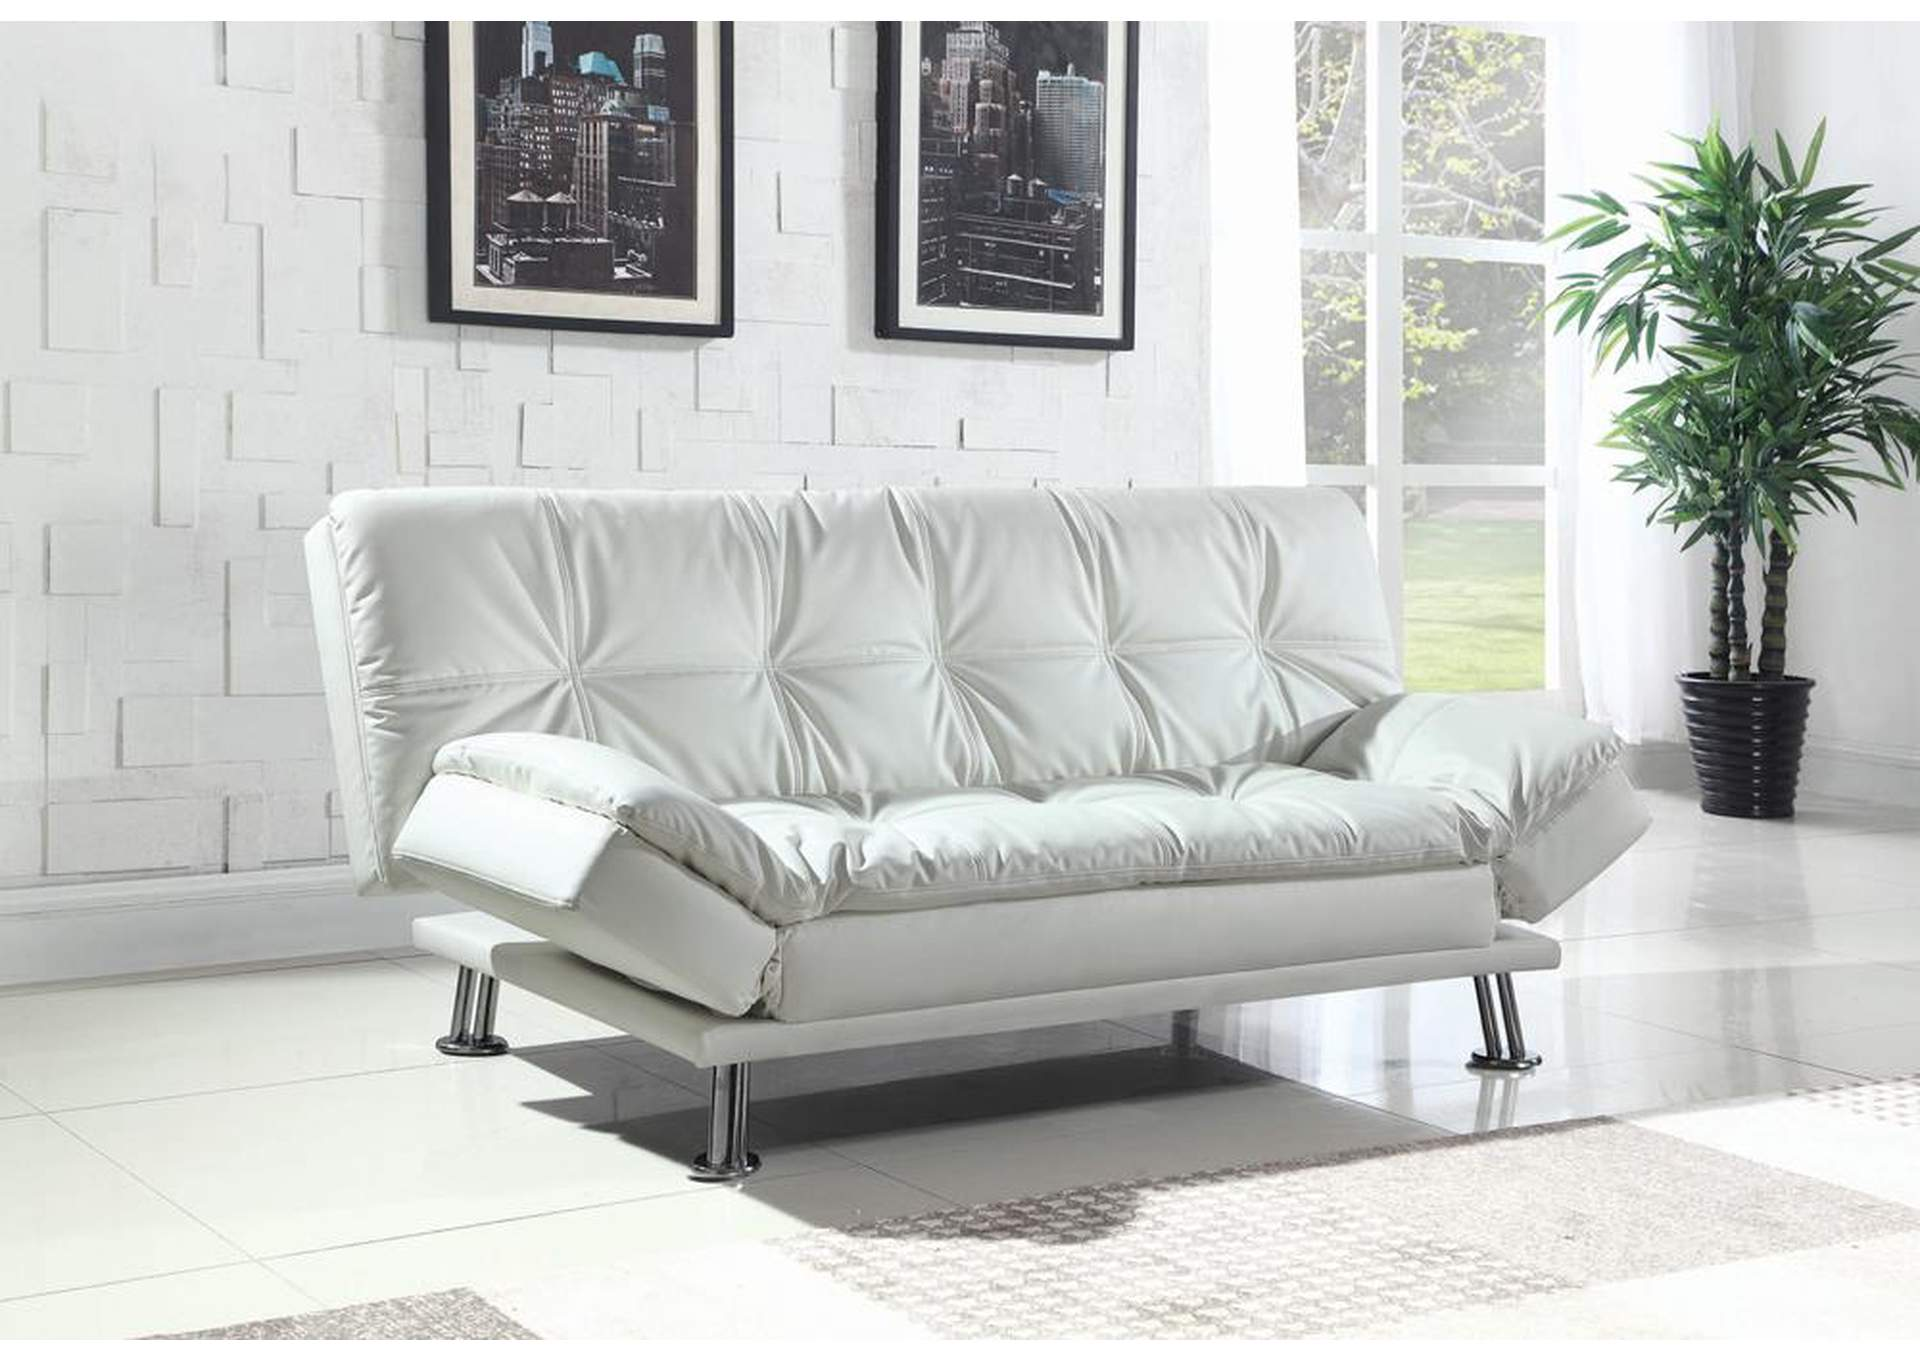 furniture store northwest side chicago northwest side chicago rh histylefurnitureco com sofa furniture stores near me sofa furniture store philippines